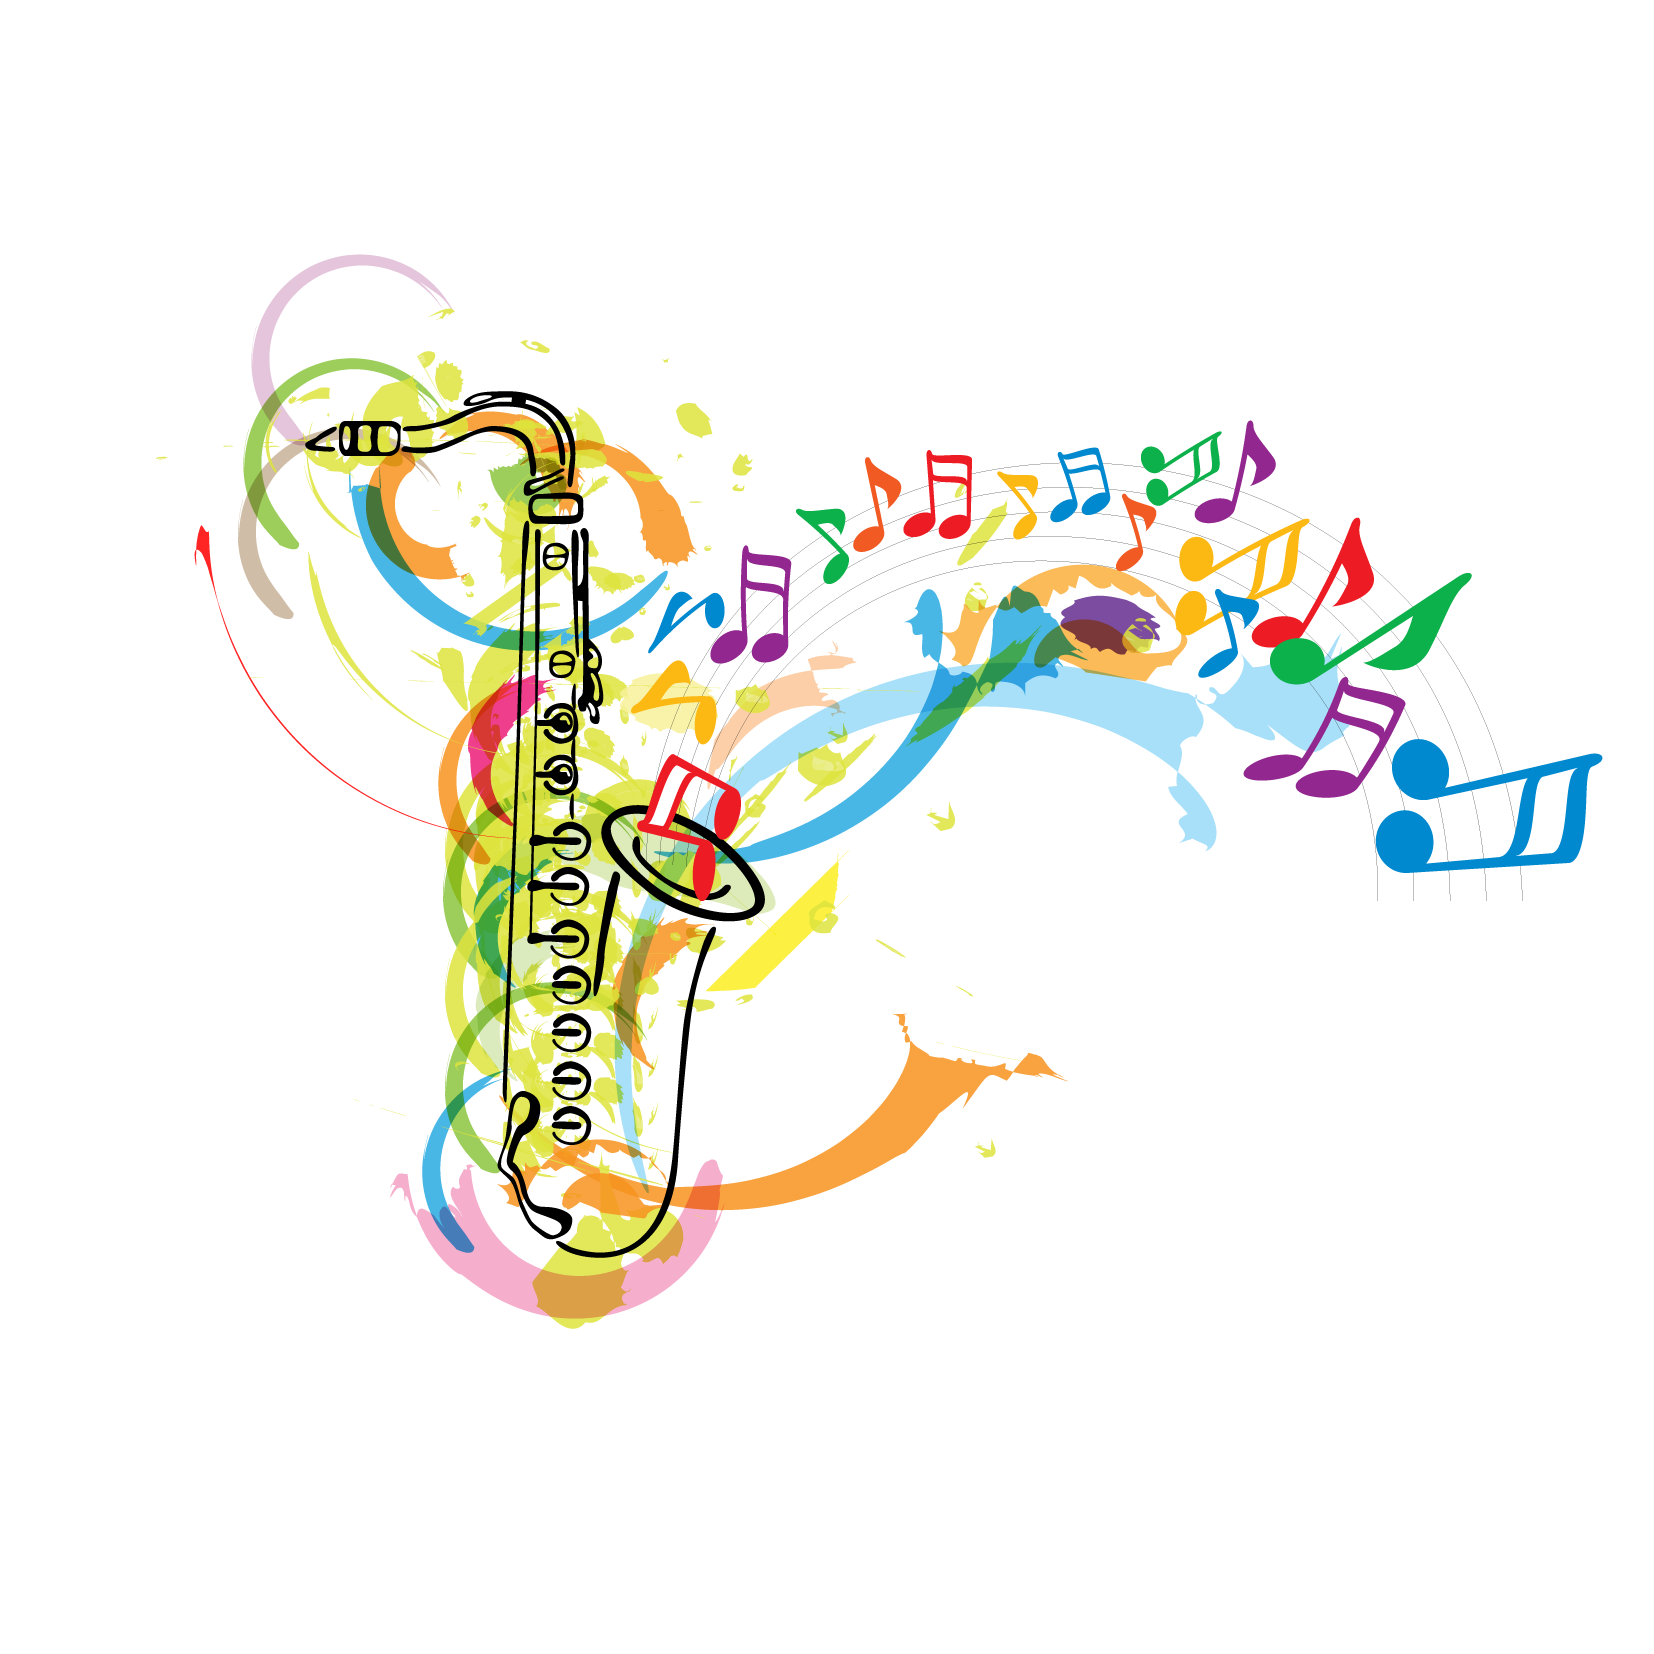 Christmas music notes clipart graphic download Saxophone Musical note Clip art - Instrument free download 1654*1654 ... graphic download